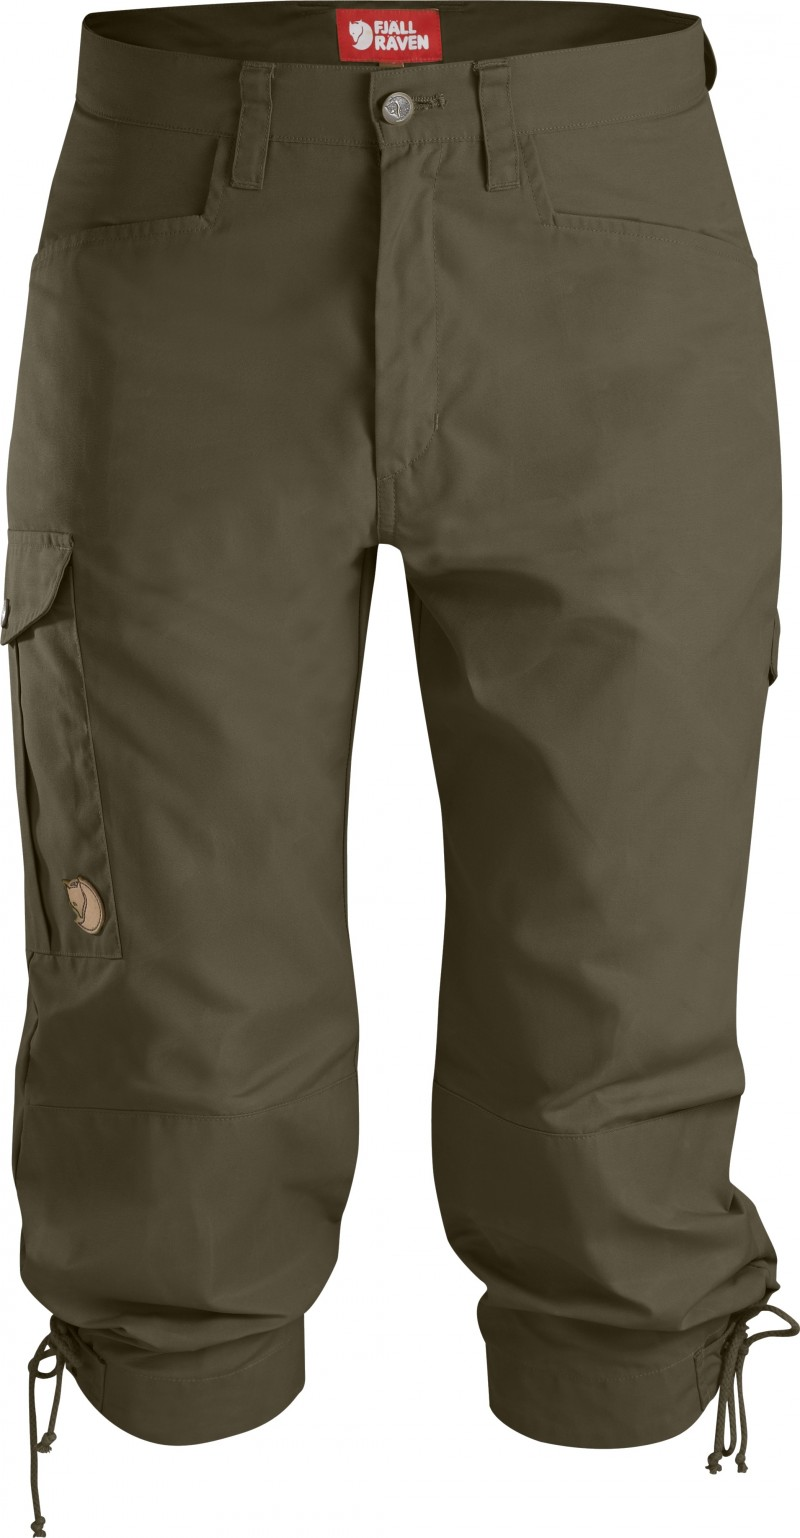 FjallRaven Iceland Knickers W. Dark Olive-30